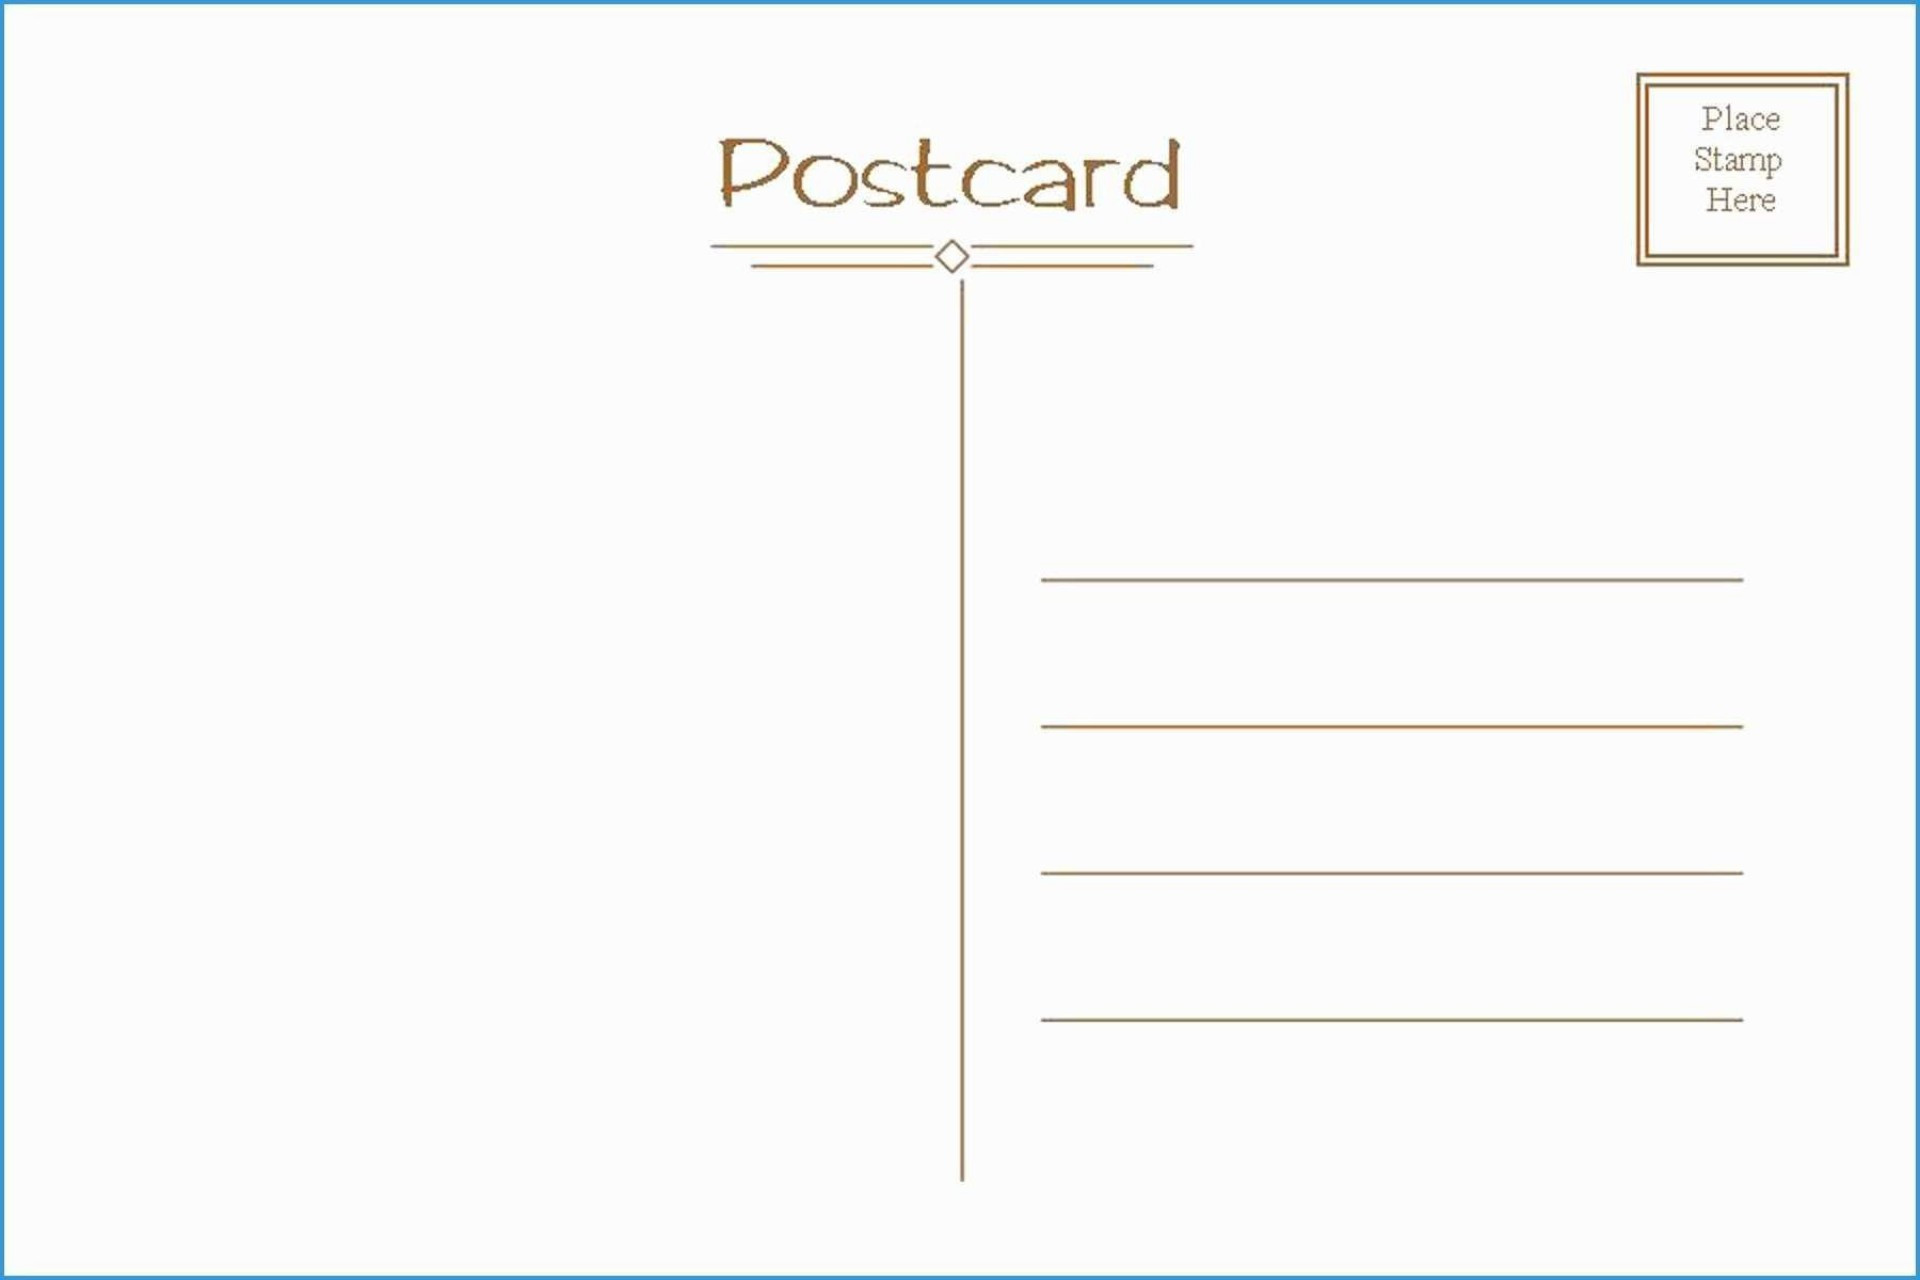 006 Exceptional Postcard Layout For Microsoft Word Highest Quality  4 Template1920